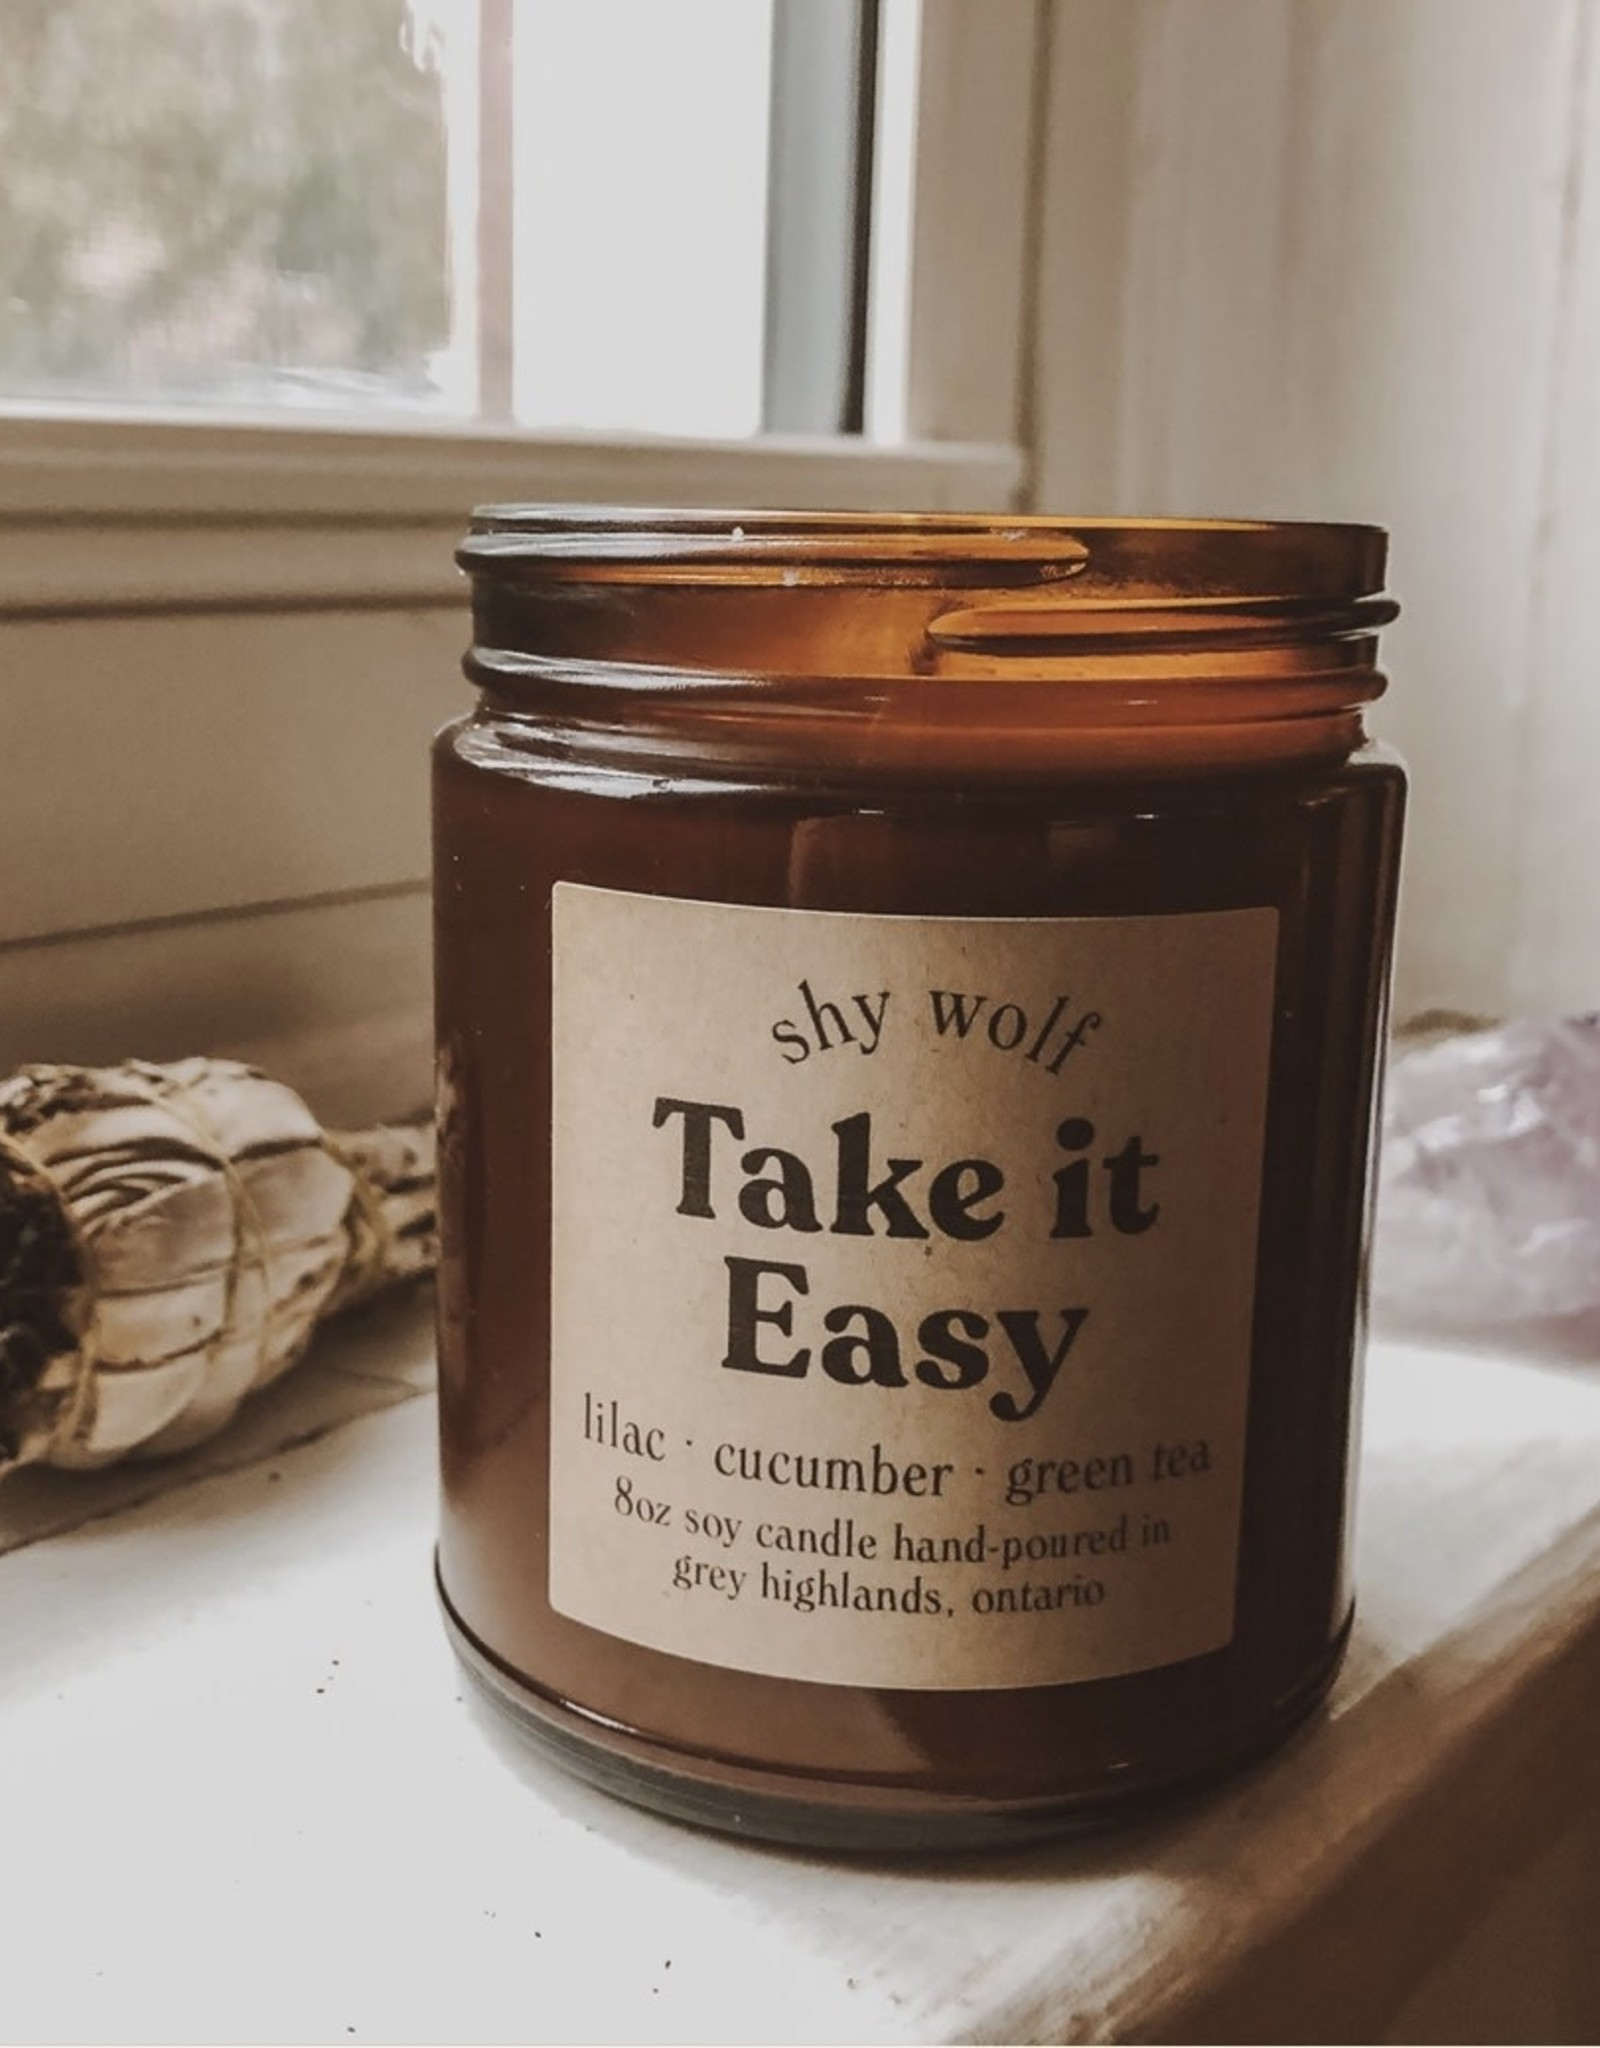 Shy Wolf - Take It Easy Soy Candle